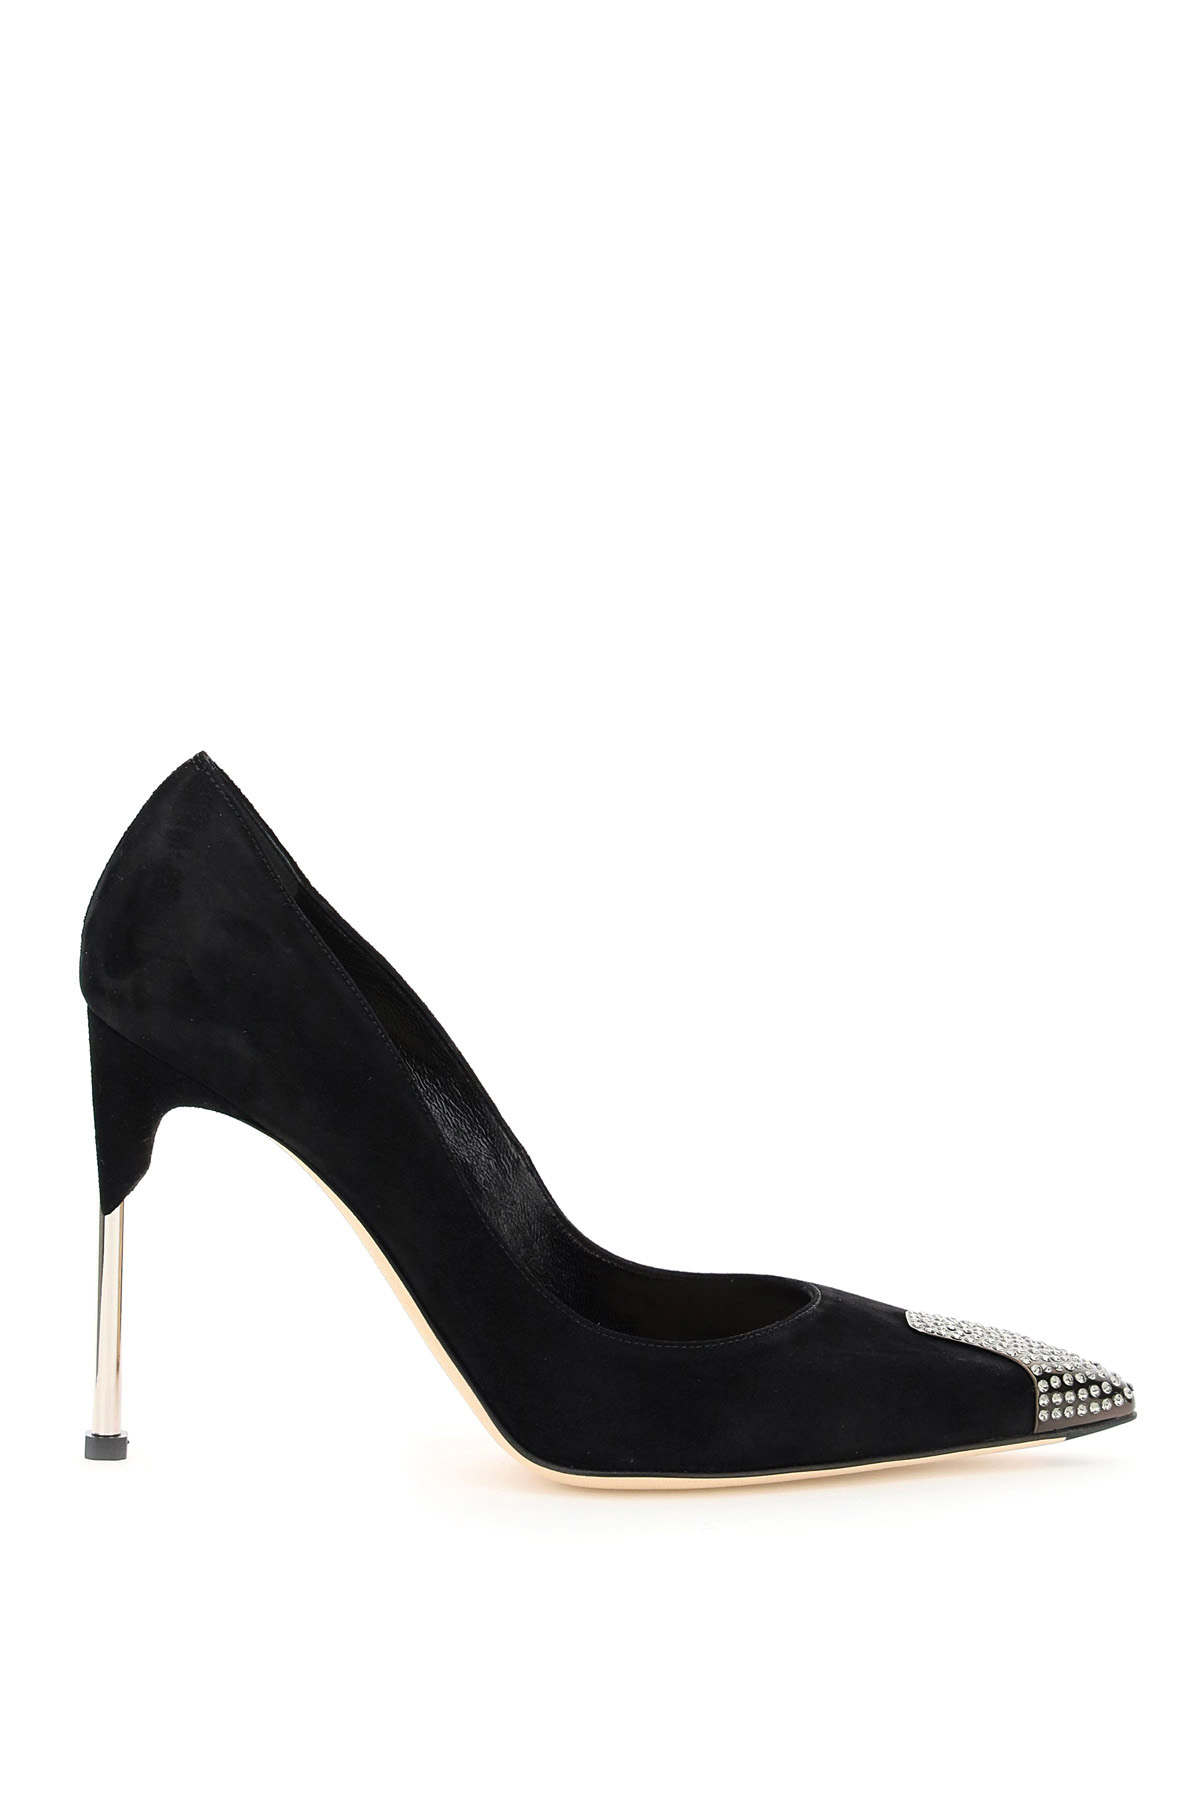 ALEXANDER MCQUEEN PUMPS WITH CRYSTALS 39 Black Leather